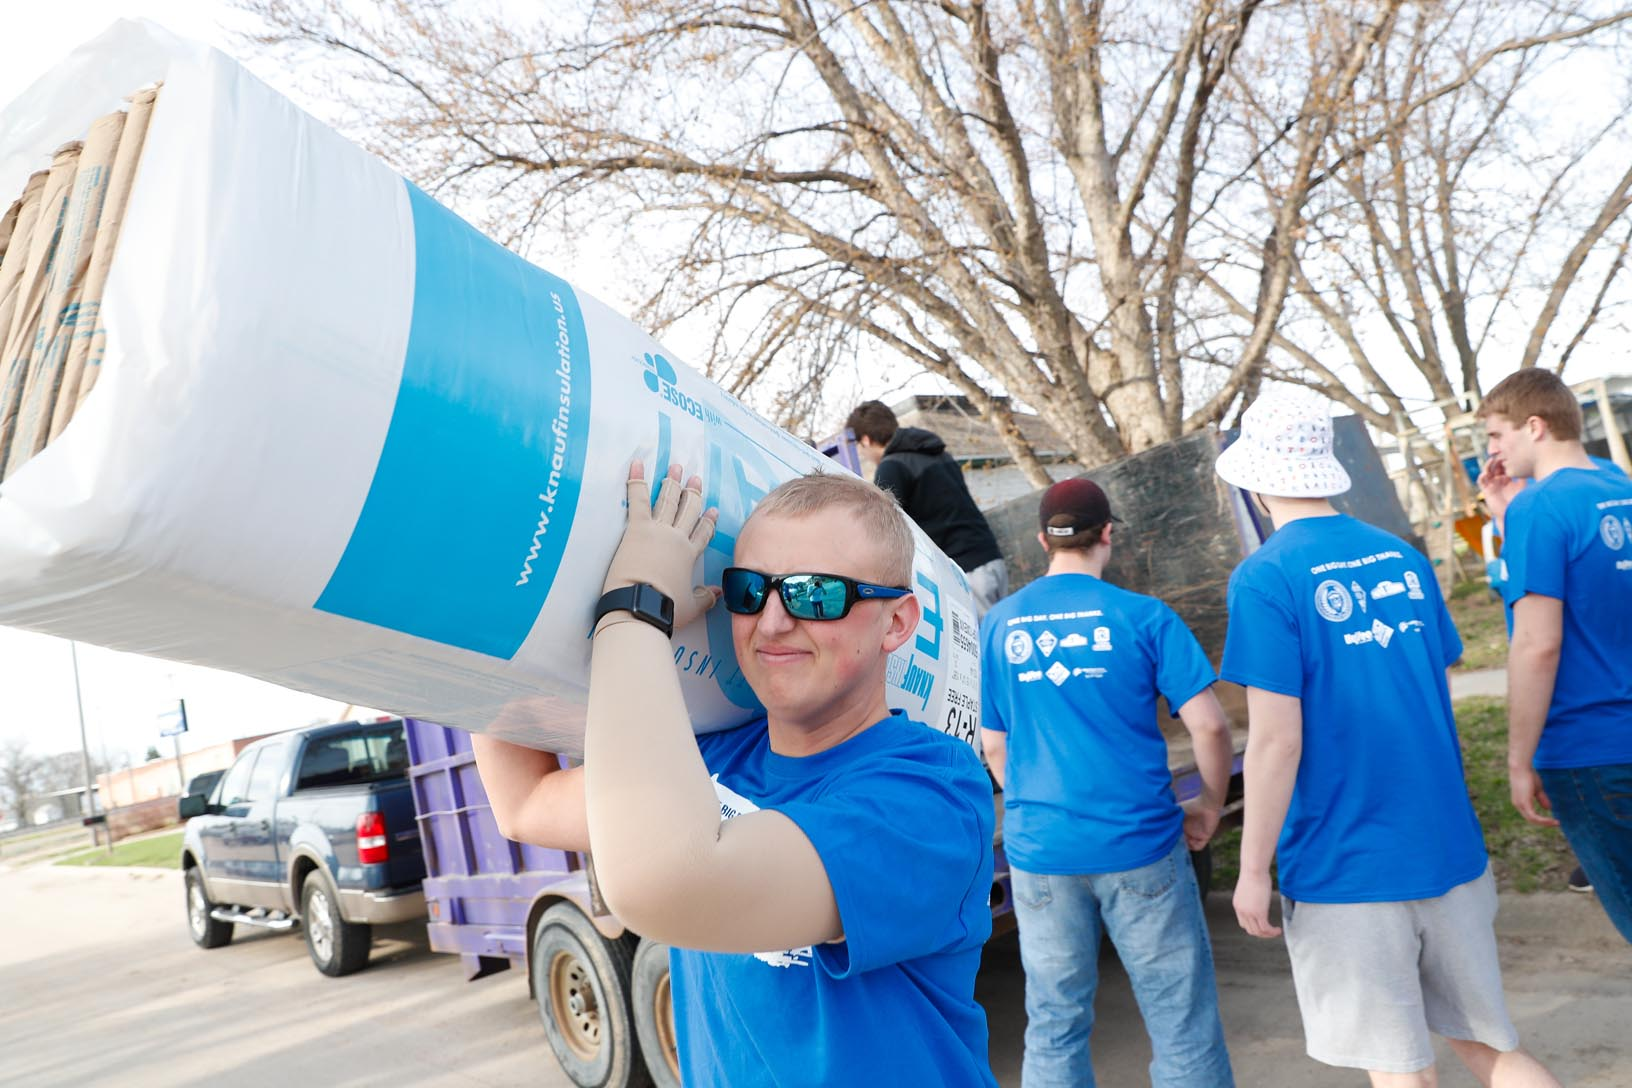 UNK student Kyle Anderson, a Sigma Tau Gamma fraternity member, helps with flood recovery efforts in Gibbon Saturday. Anderson is from Columbus, which also was damaged in the recent floods. (Photo by Corbey R. Dorsey, UNK Communications)